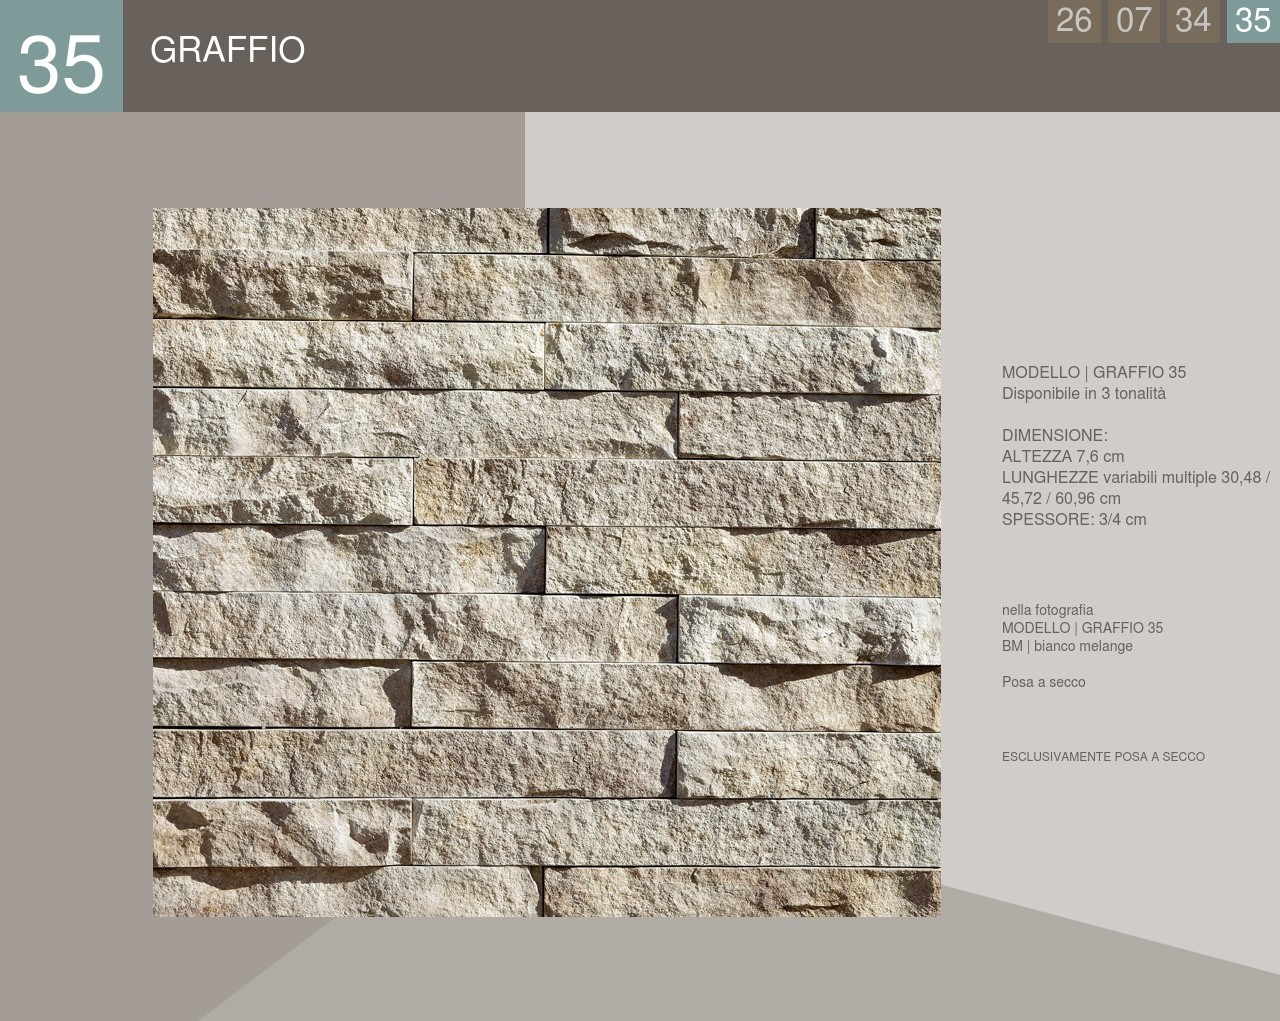 Stone cladding Castle profile Graffio model